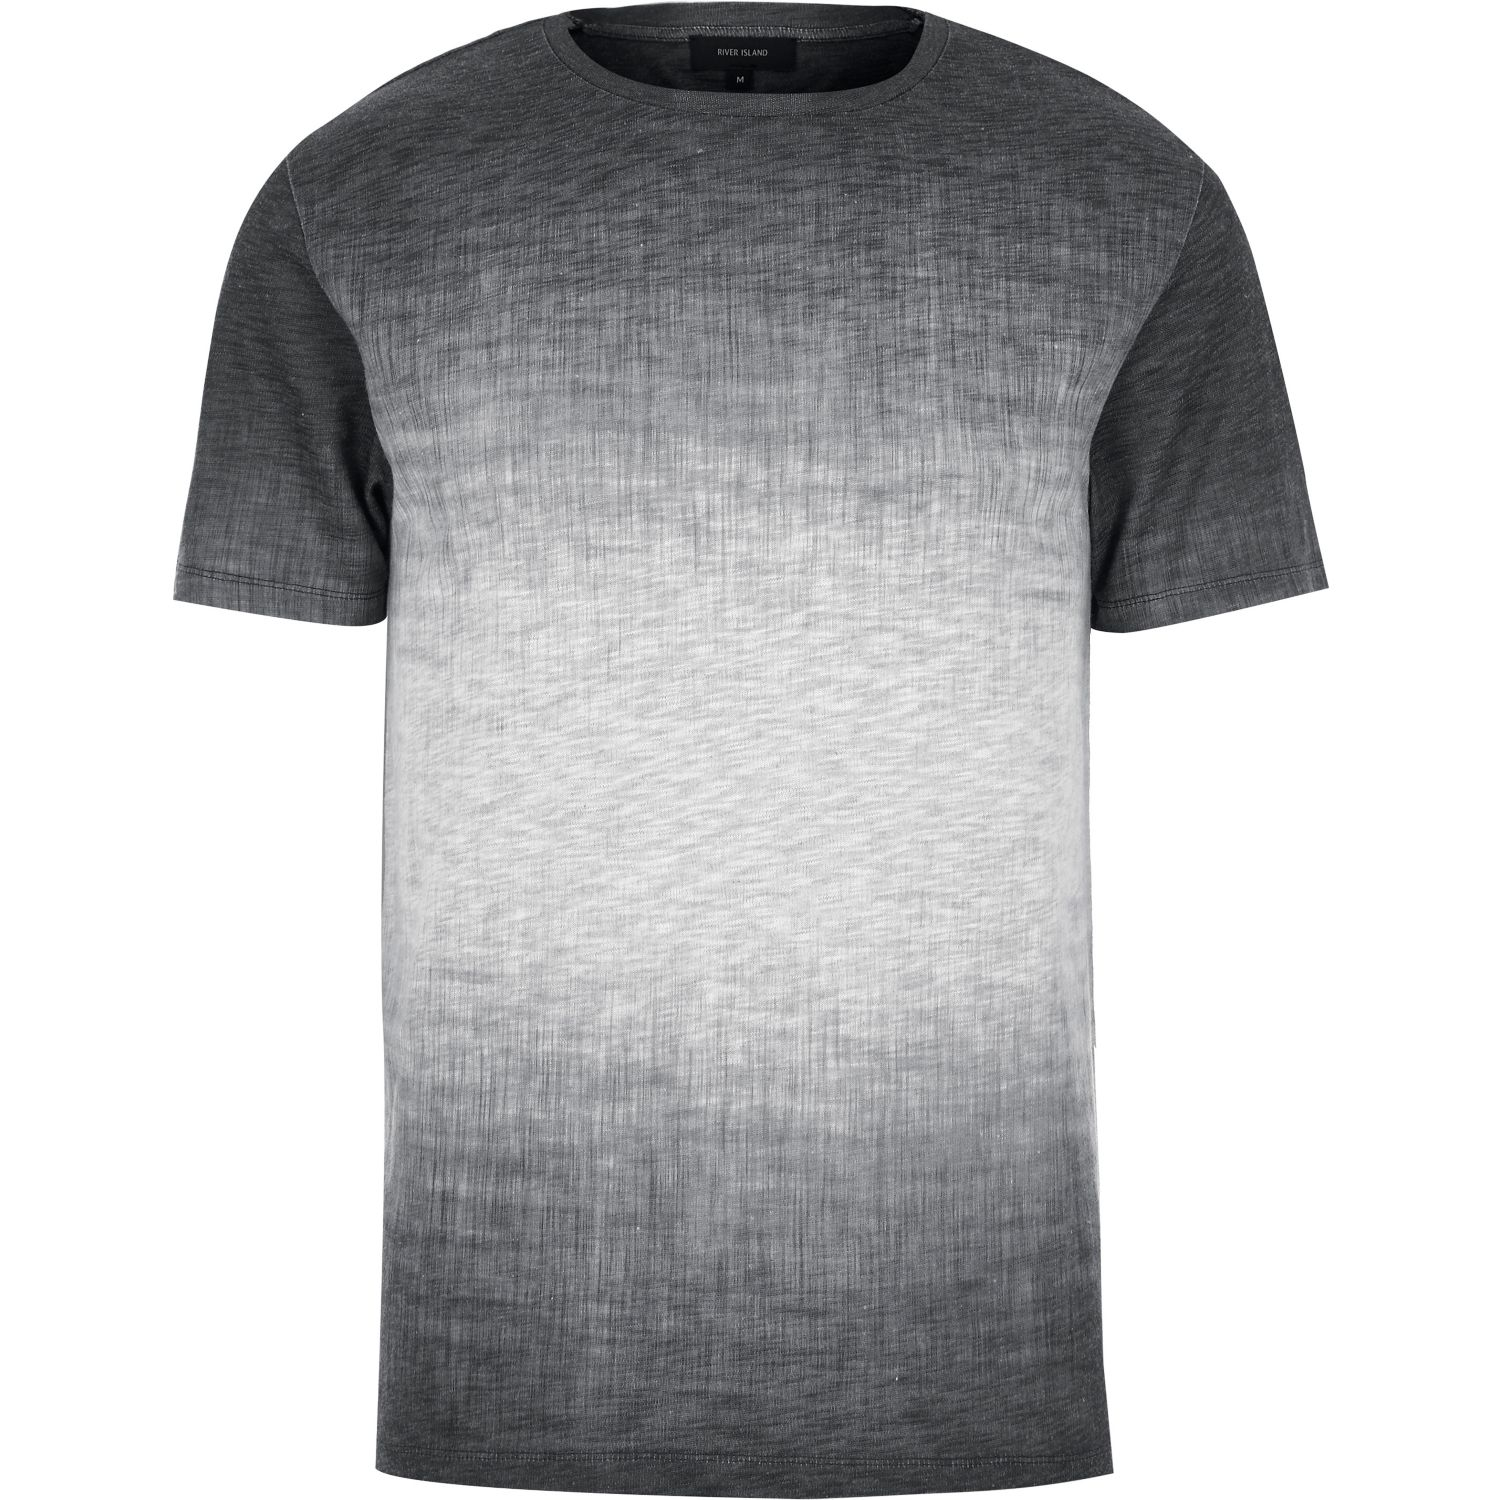 lyst river island dark grey textured faded t shirt in gray for men